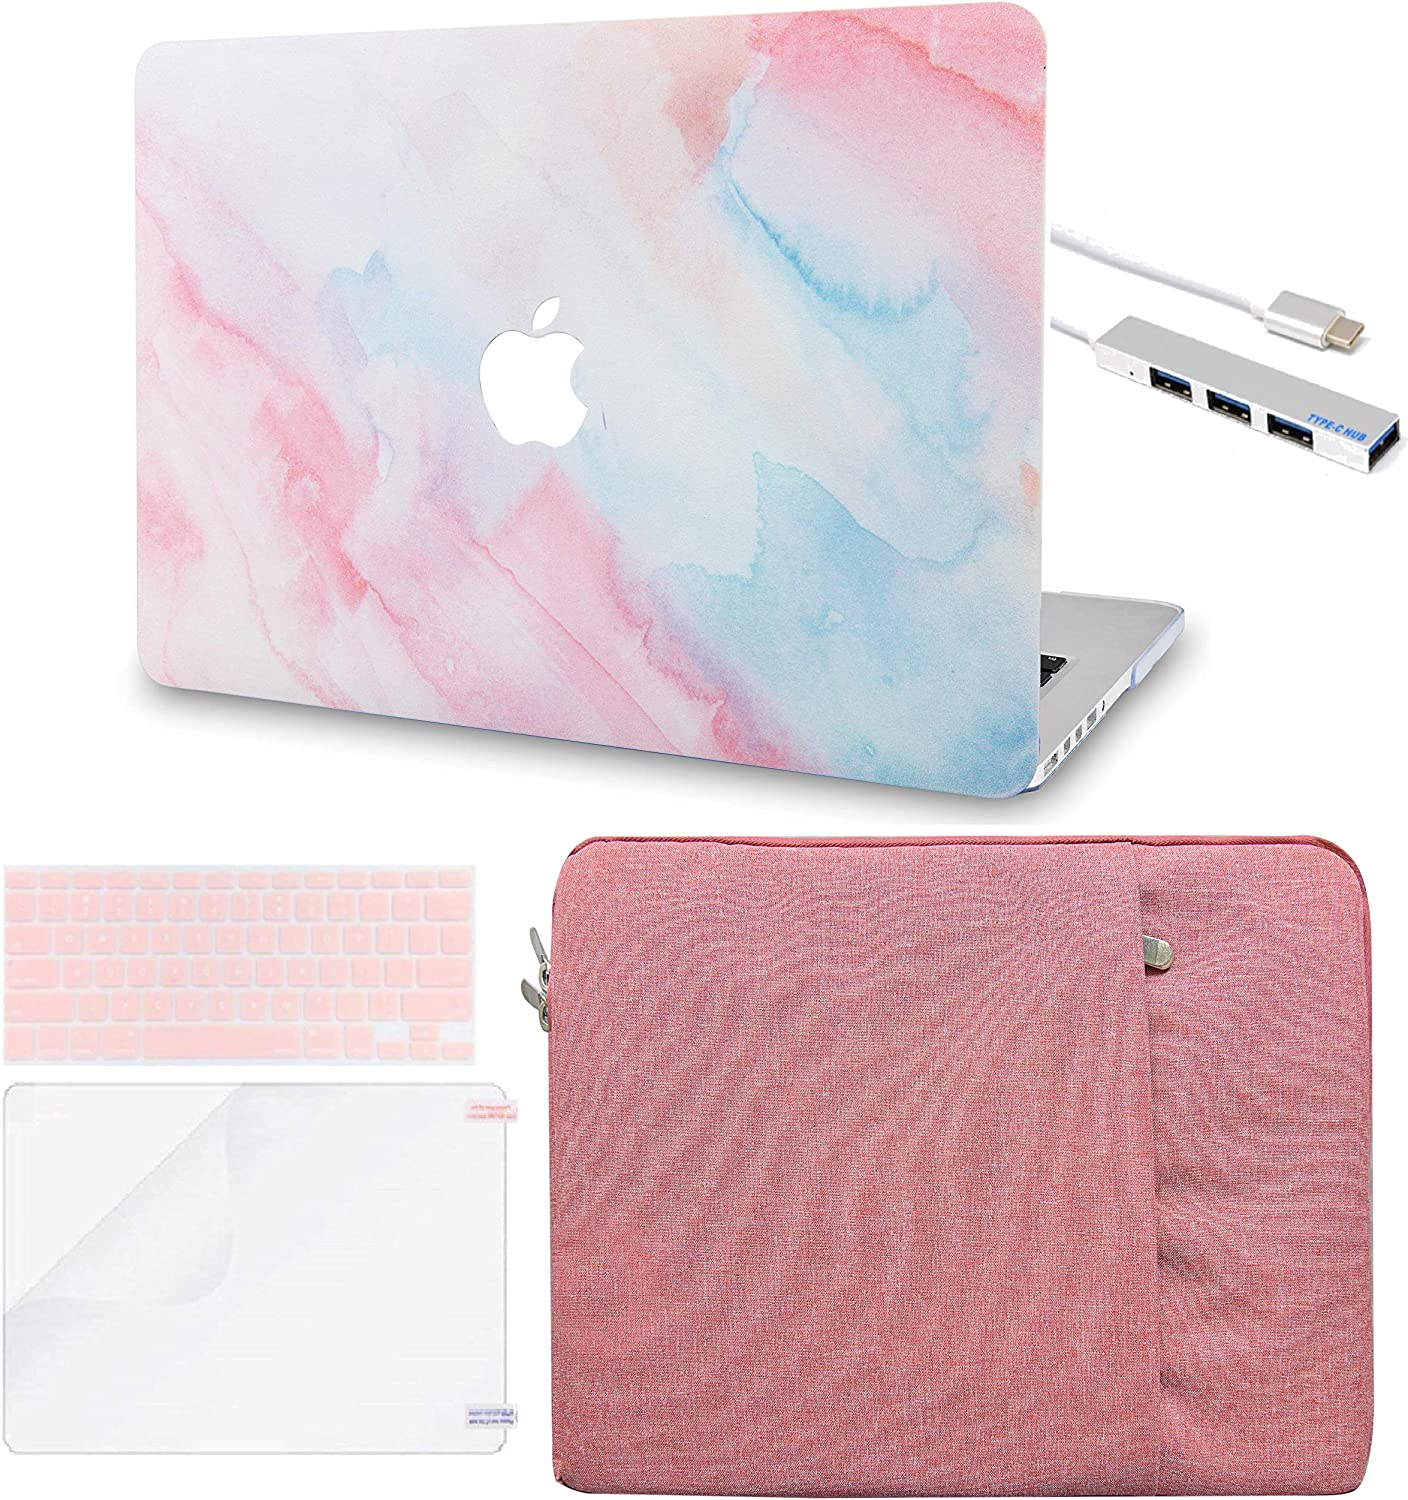 """LuvCase 5in1 LaptopCase for MacBook Pro 13""""(2020) with Touch Bar A2251/A2289HardShellCover, Sleeve, USB Hub 3.0, Keyboard Cover&Screen Protector (Pale Pink Mist)"""